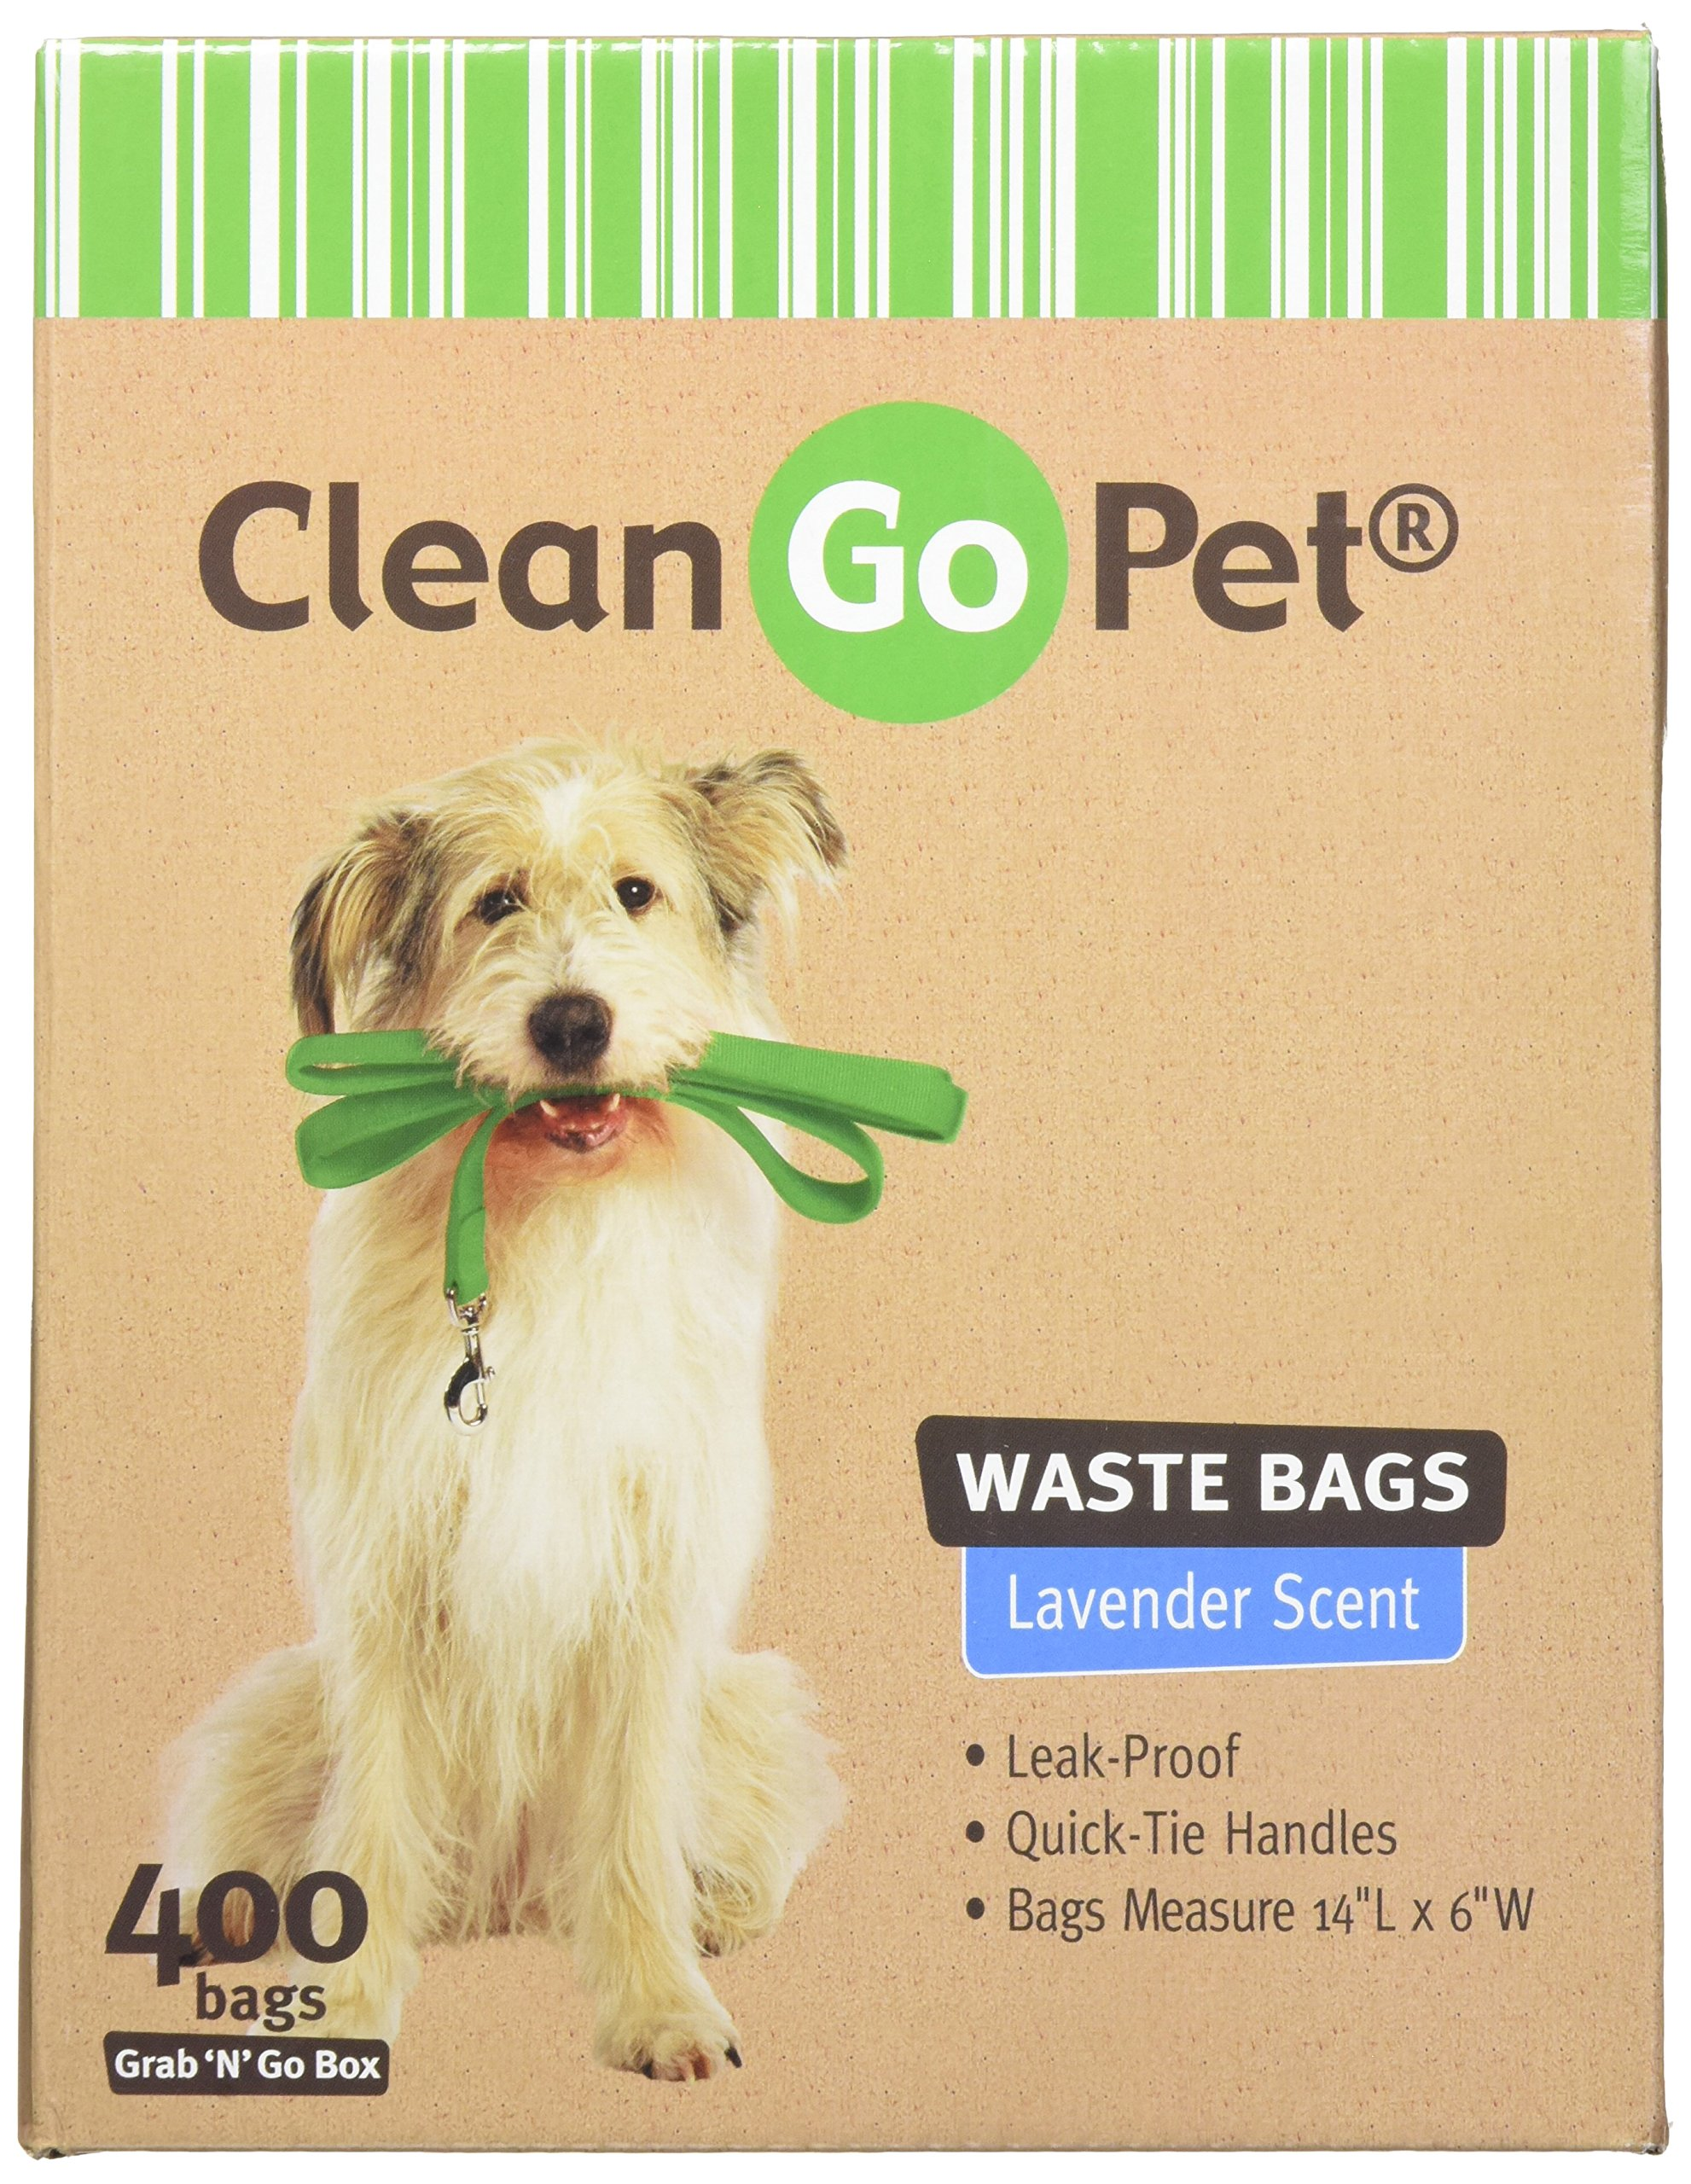 Clean Go Pet Lavender Scent Doggy Waste Bags, 400-Count, Quick-Tie Handles Poop Bags by Clean Go